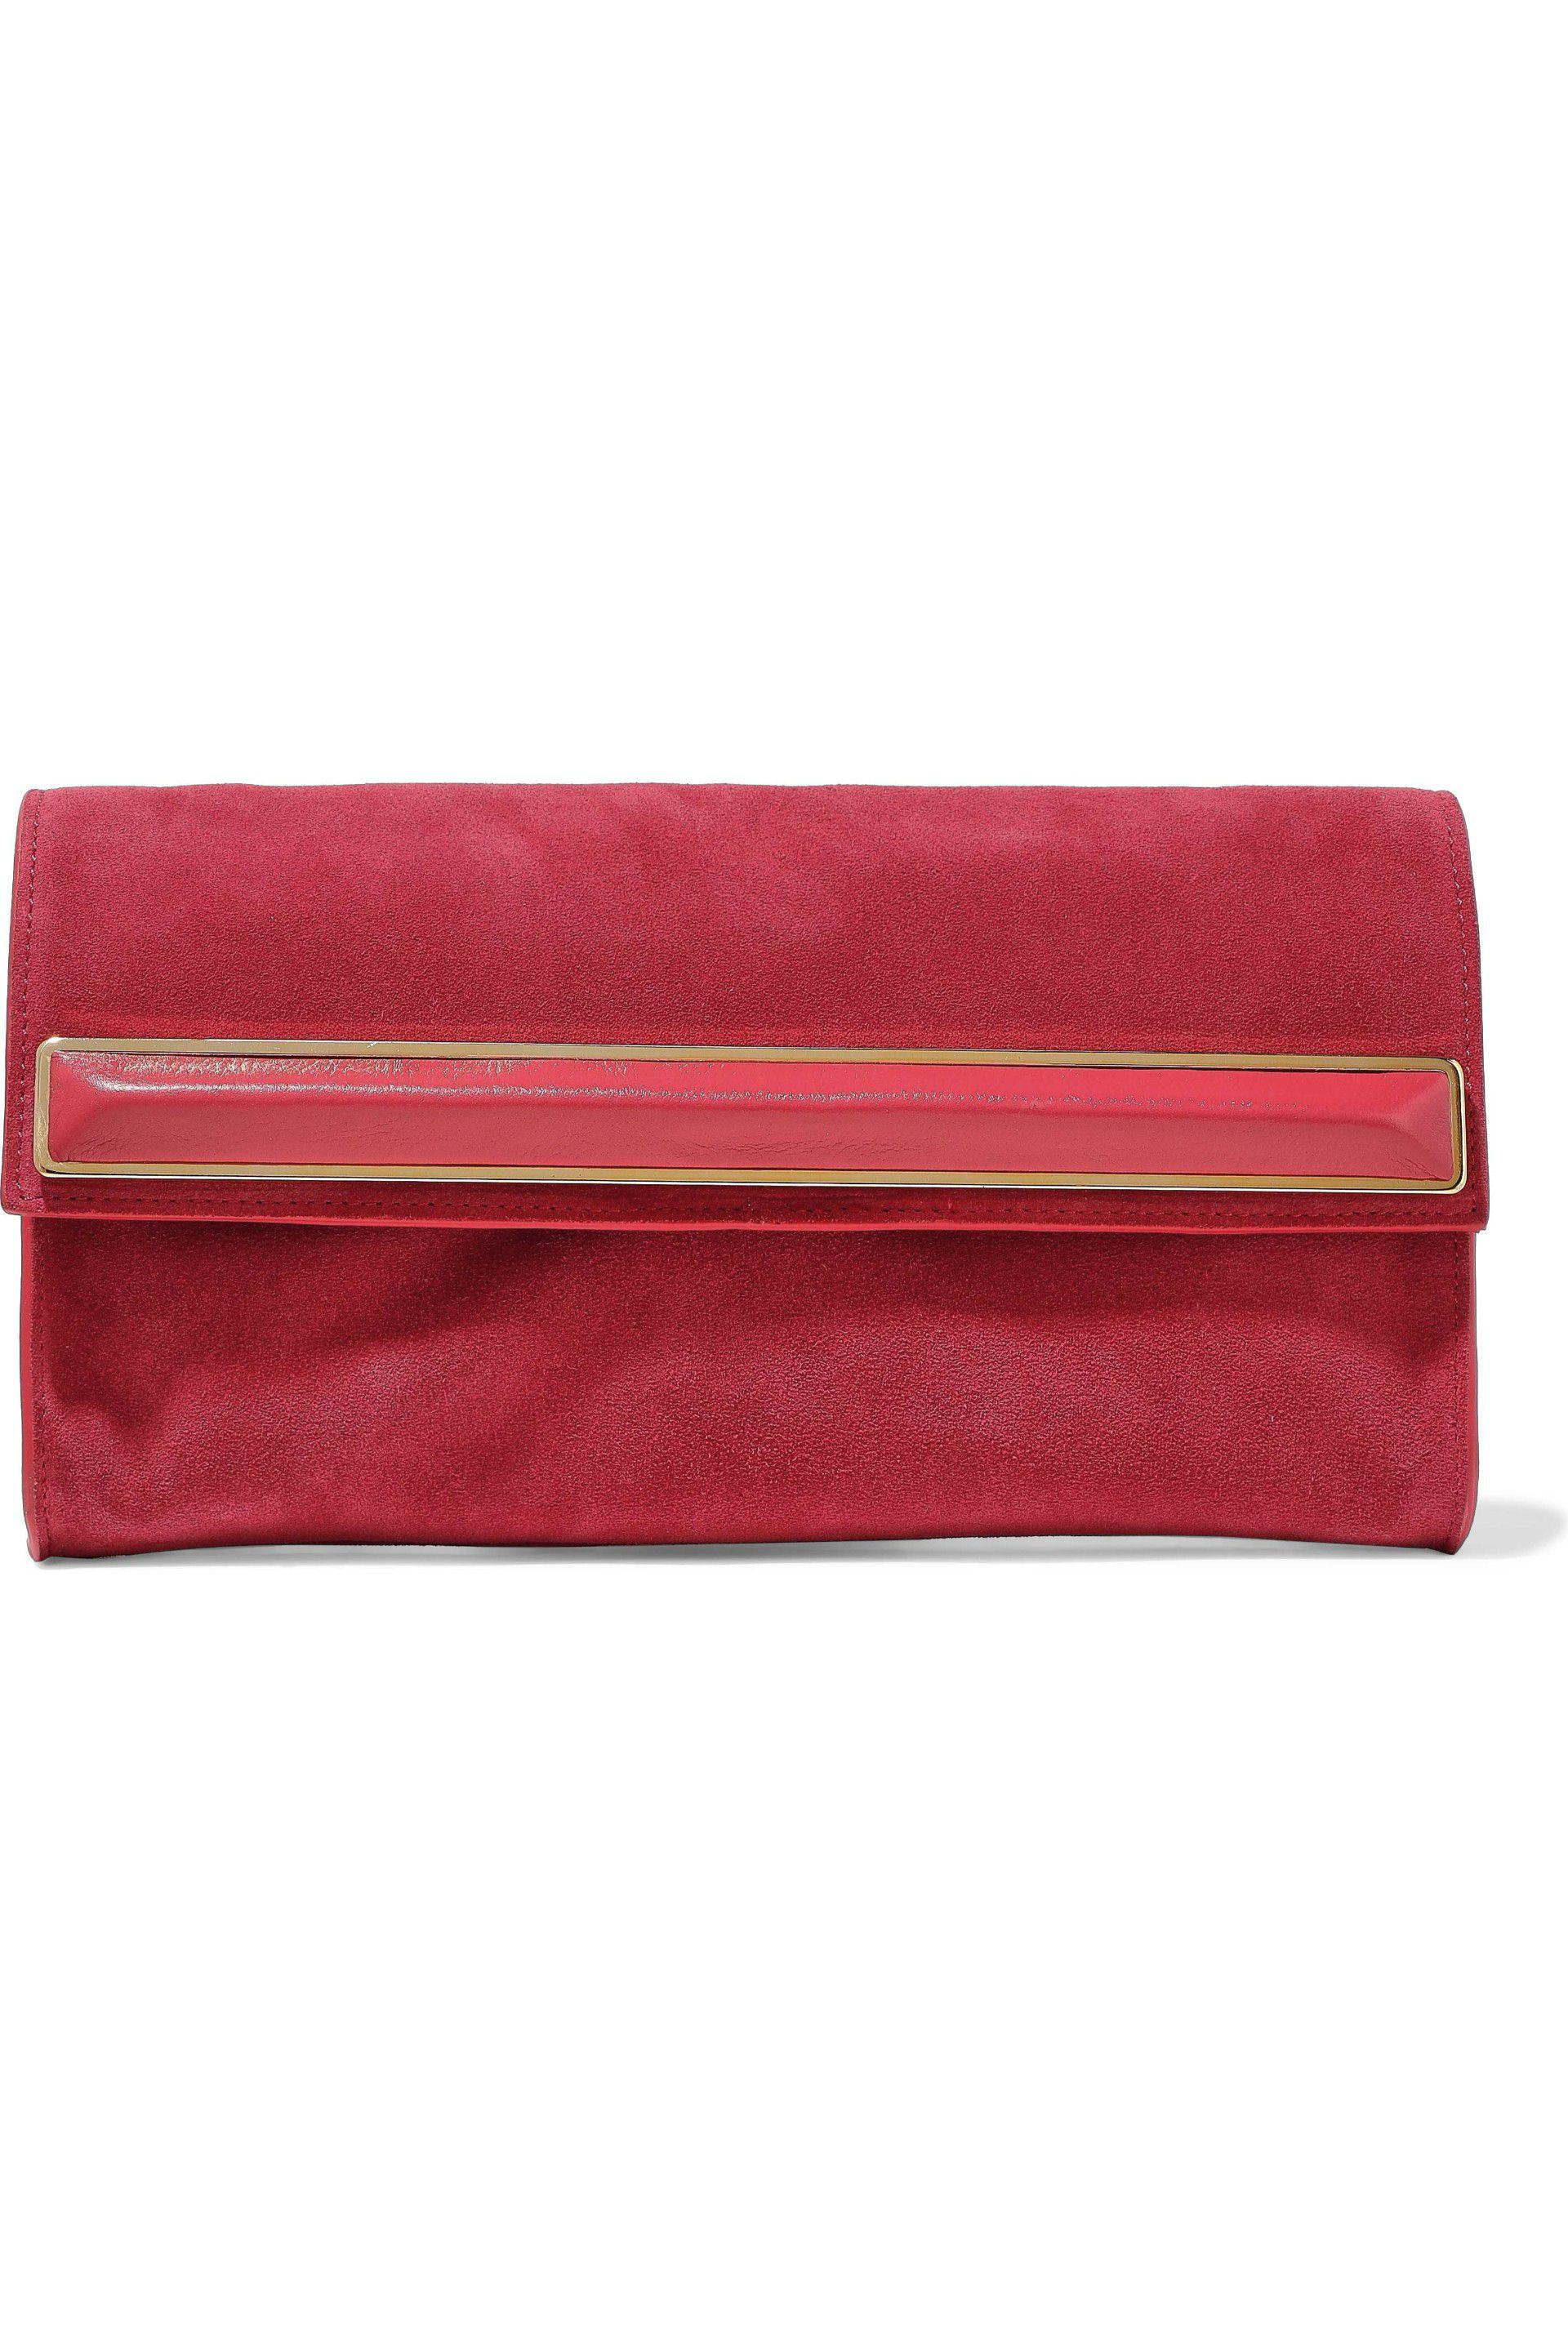 1bf4a86470 Lyst - Halston Leather-trimmed Embellished Suede Clutch in Red